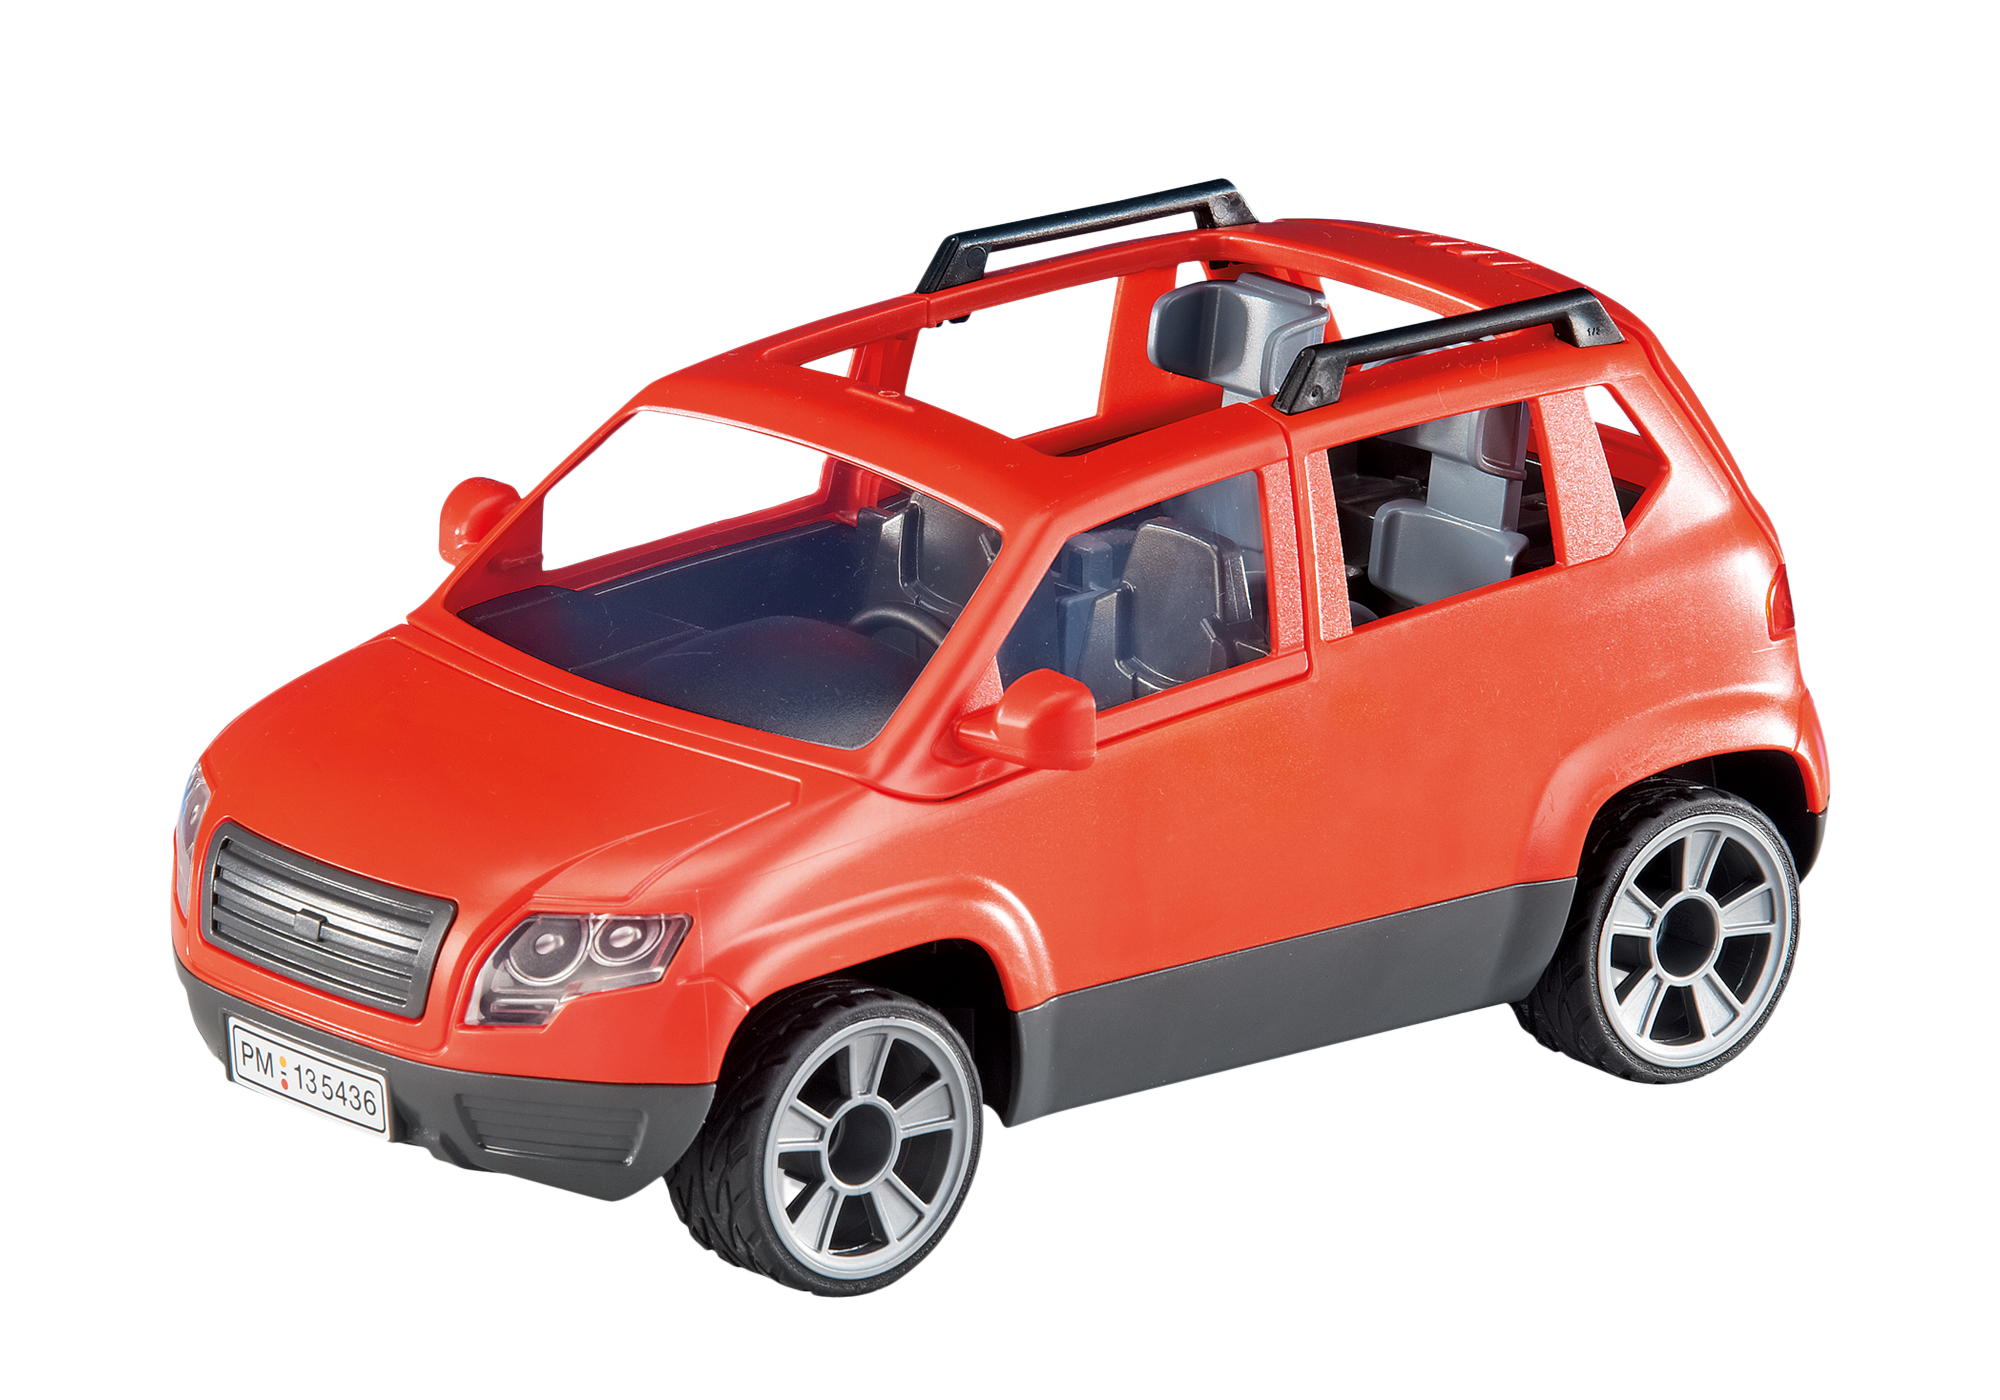 Voiture Familiale Rouge 6507 Playmobil 174 France